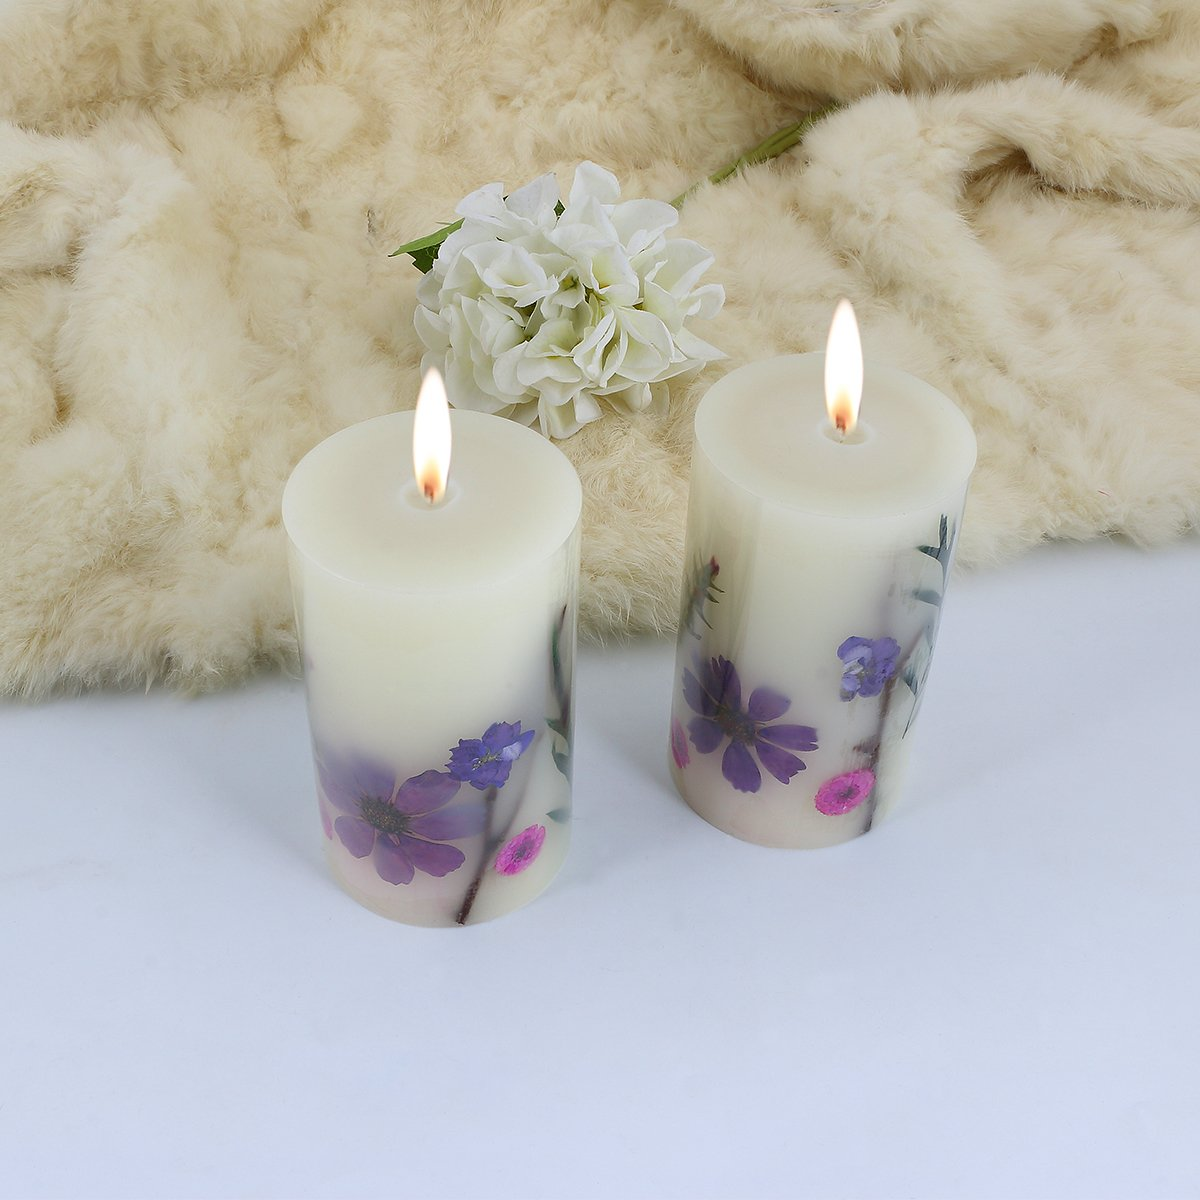 LOHOTEK Scented Candles White Tea Candle Soy Wax, Botanical Pillar Candles